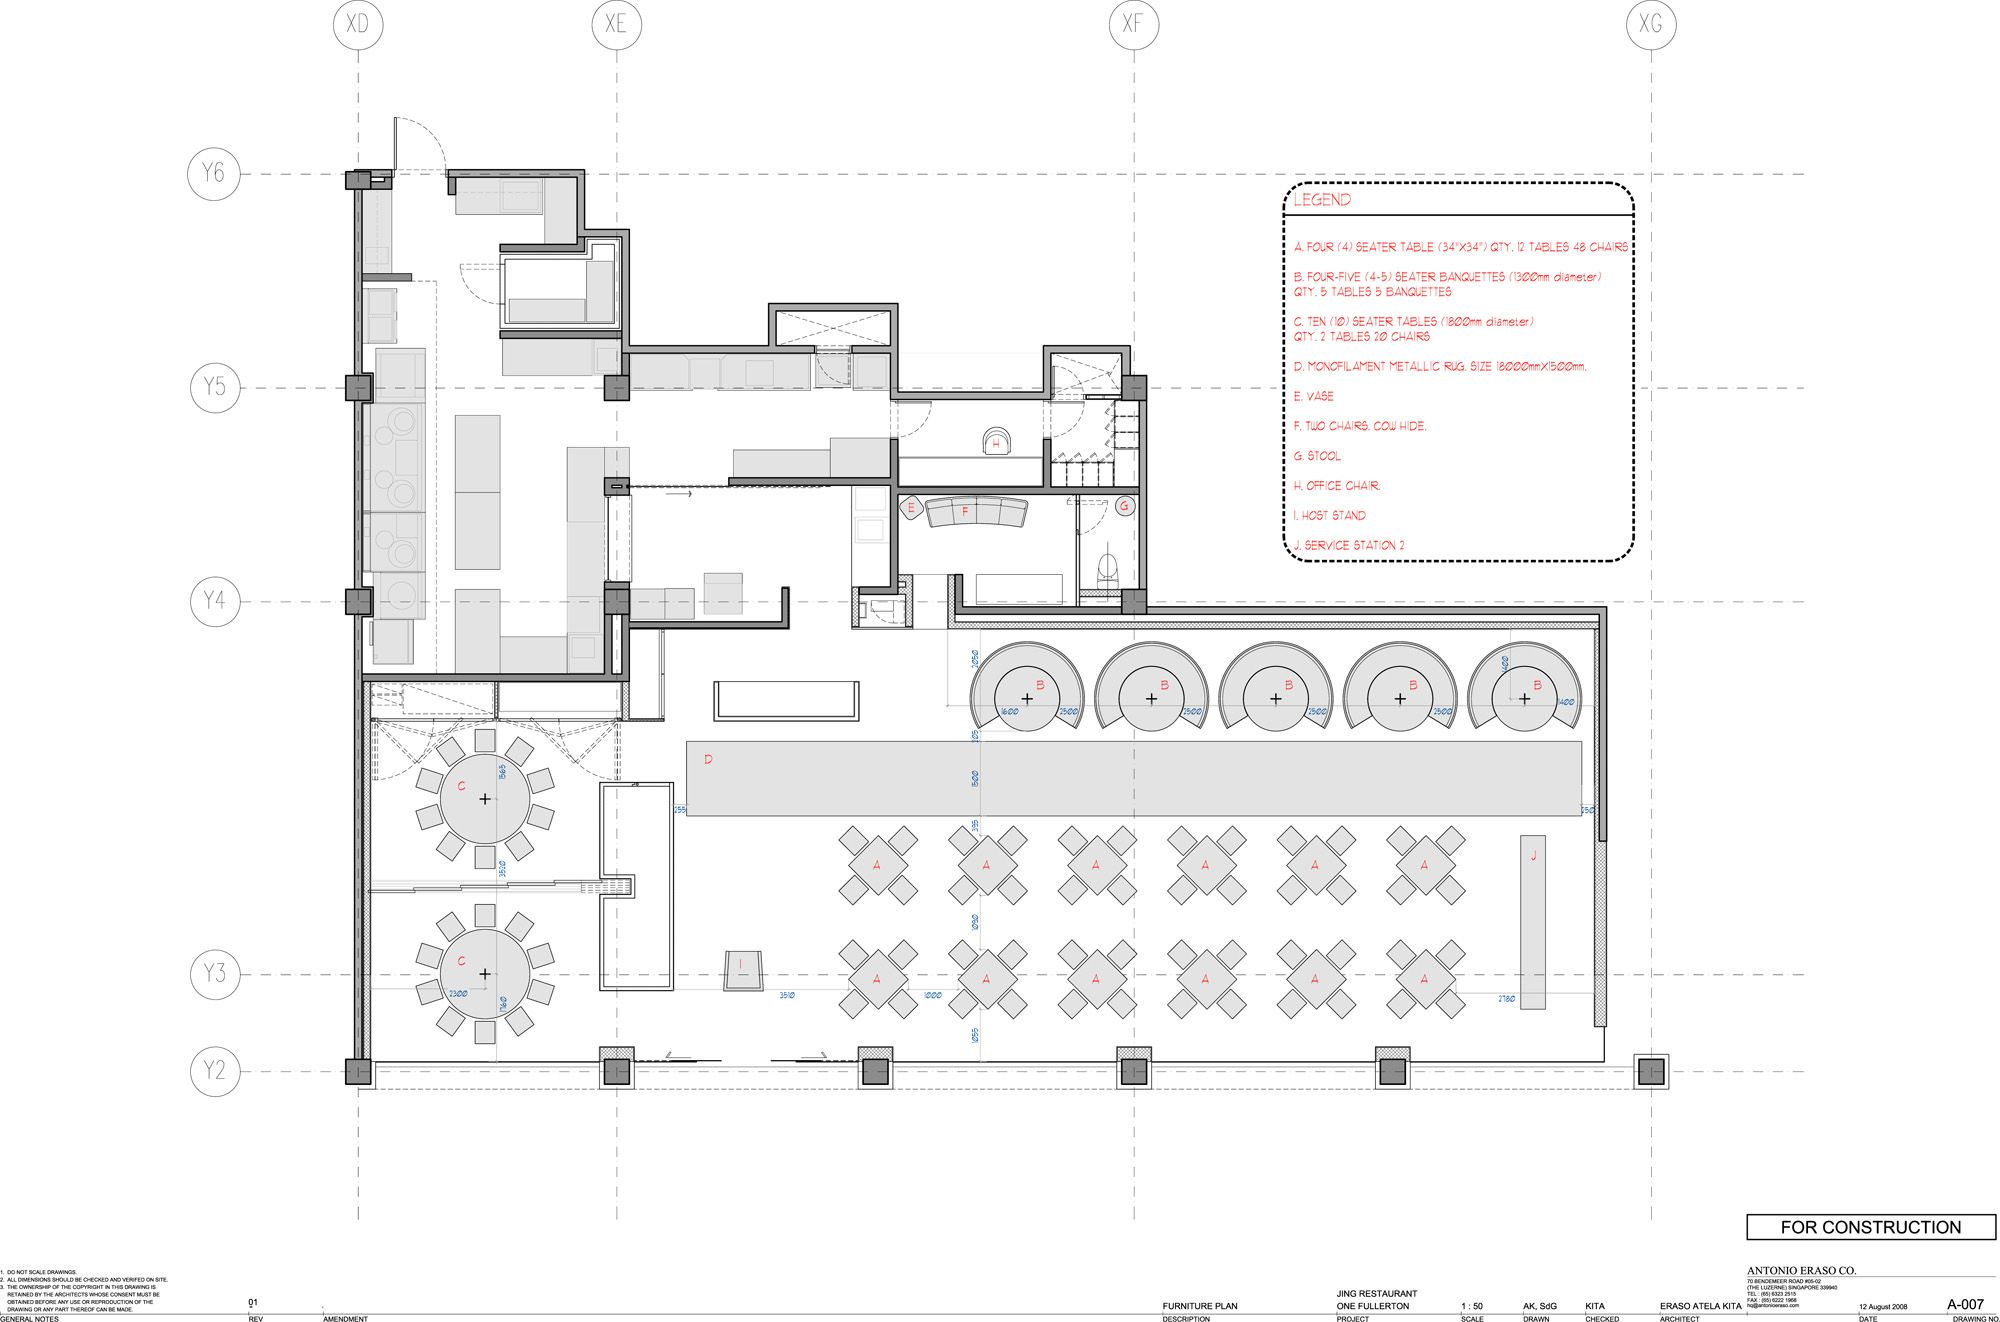 Kitchen plan and layout - Contemporary Restaurant Kitchen Plan Dwg Plan Dwg